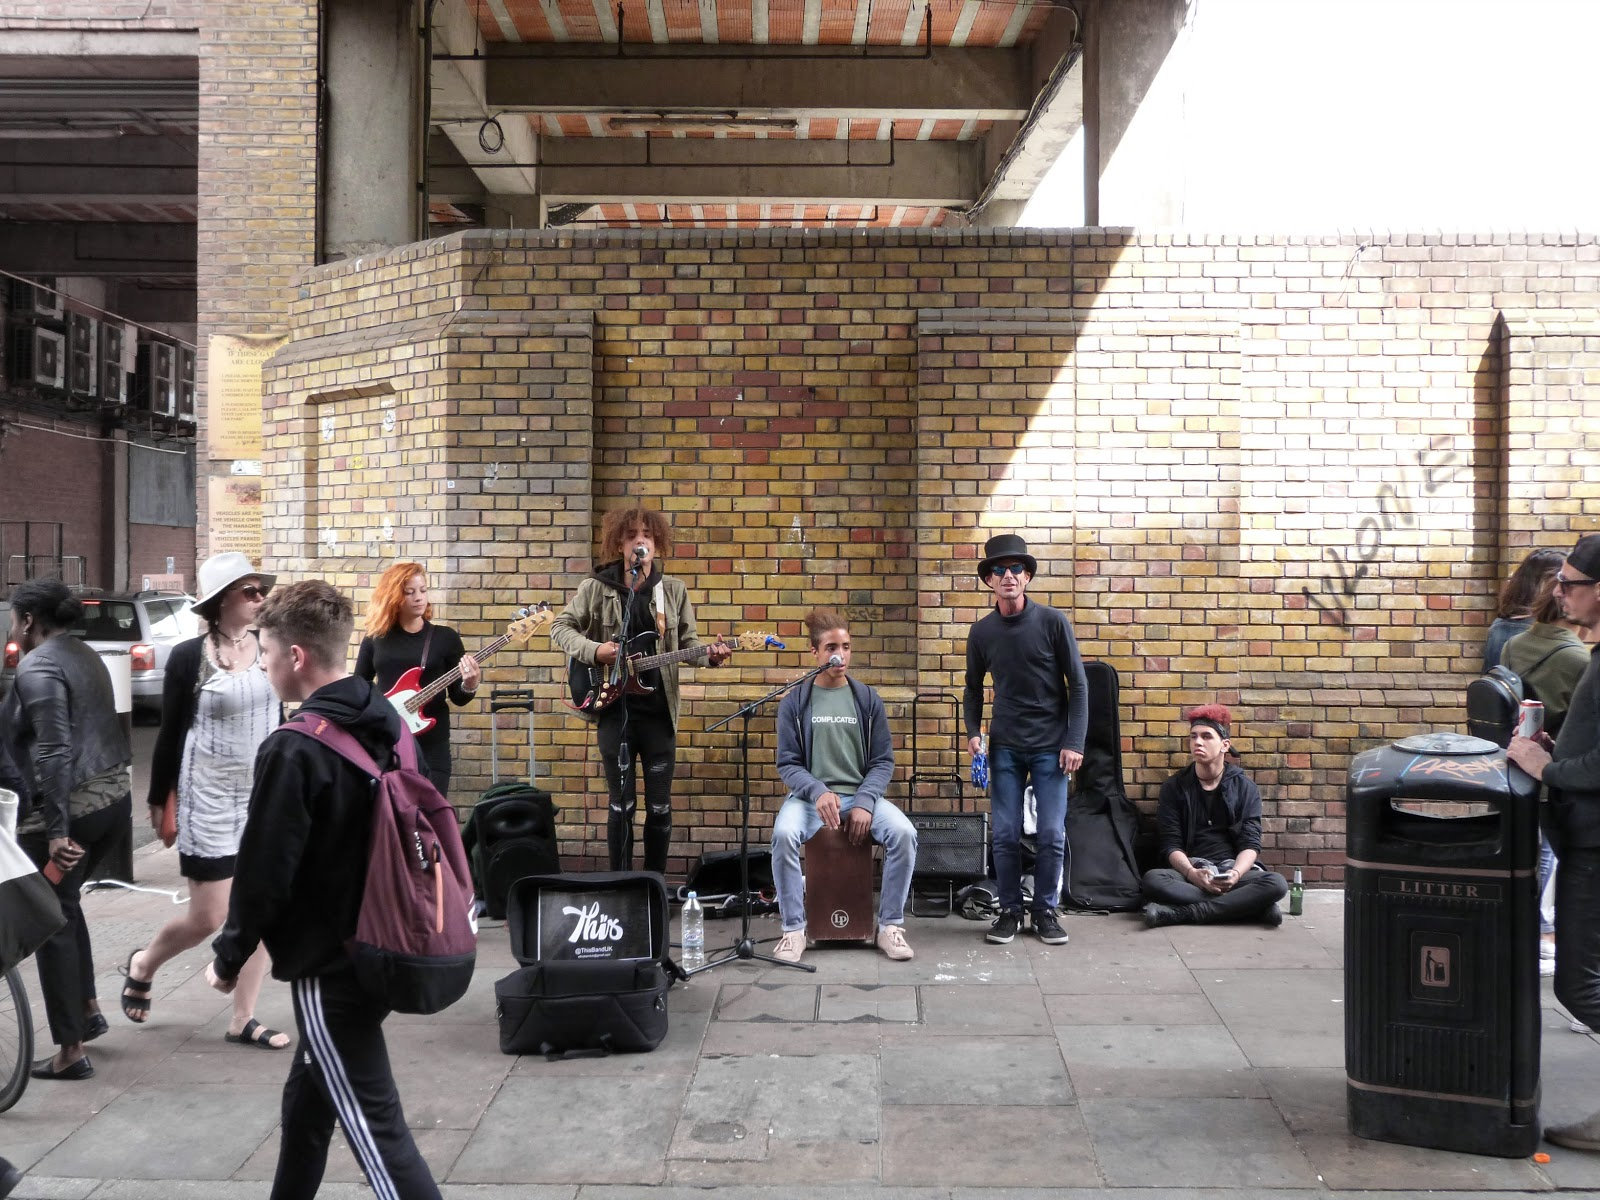 Things to do in London - Shoreditch